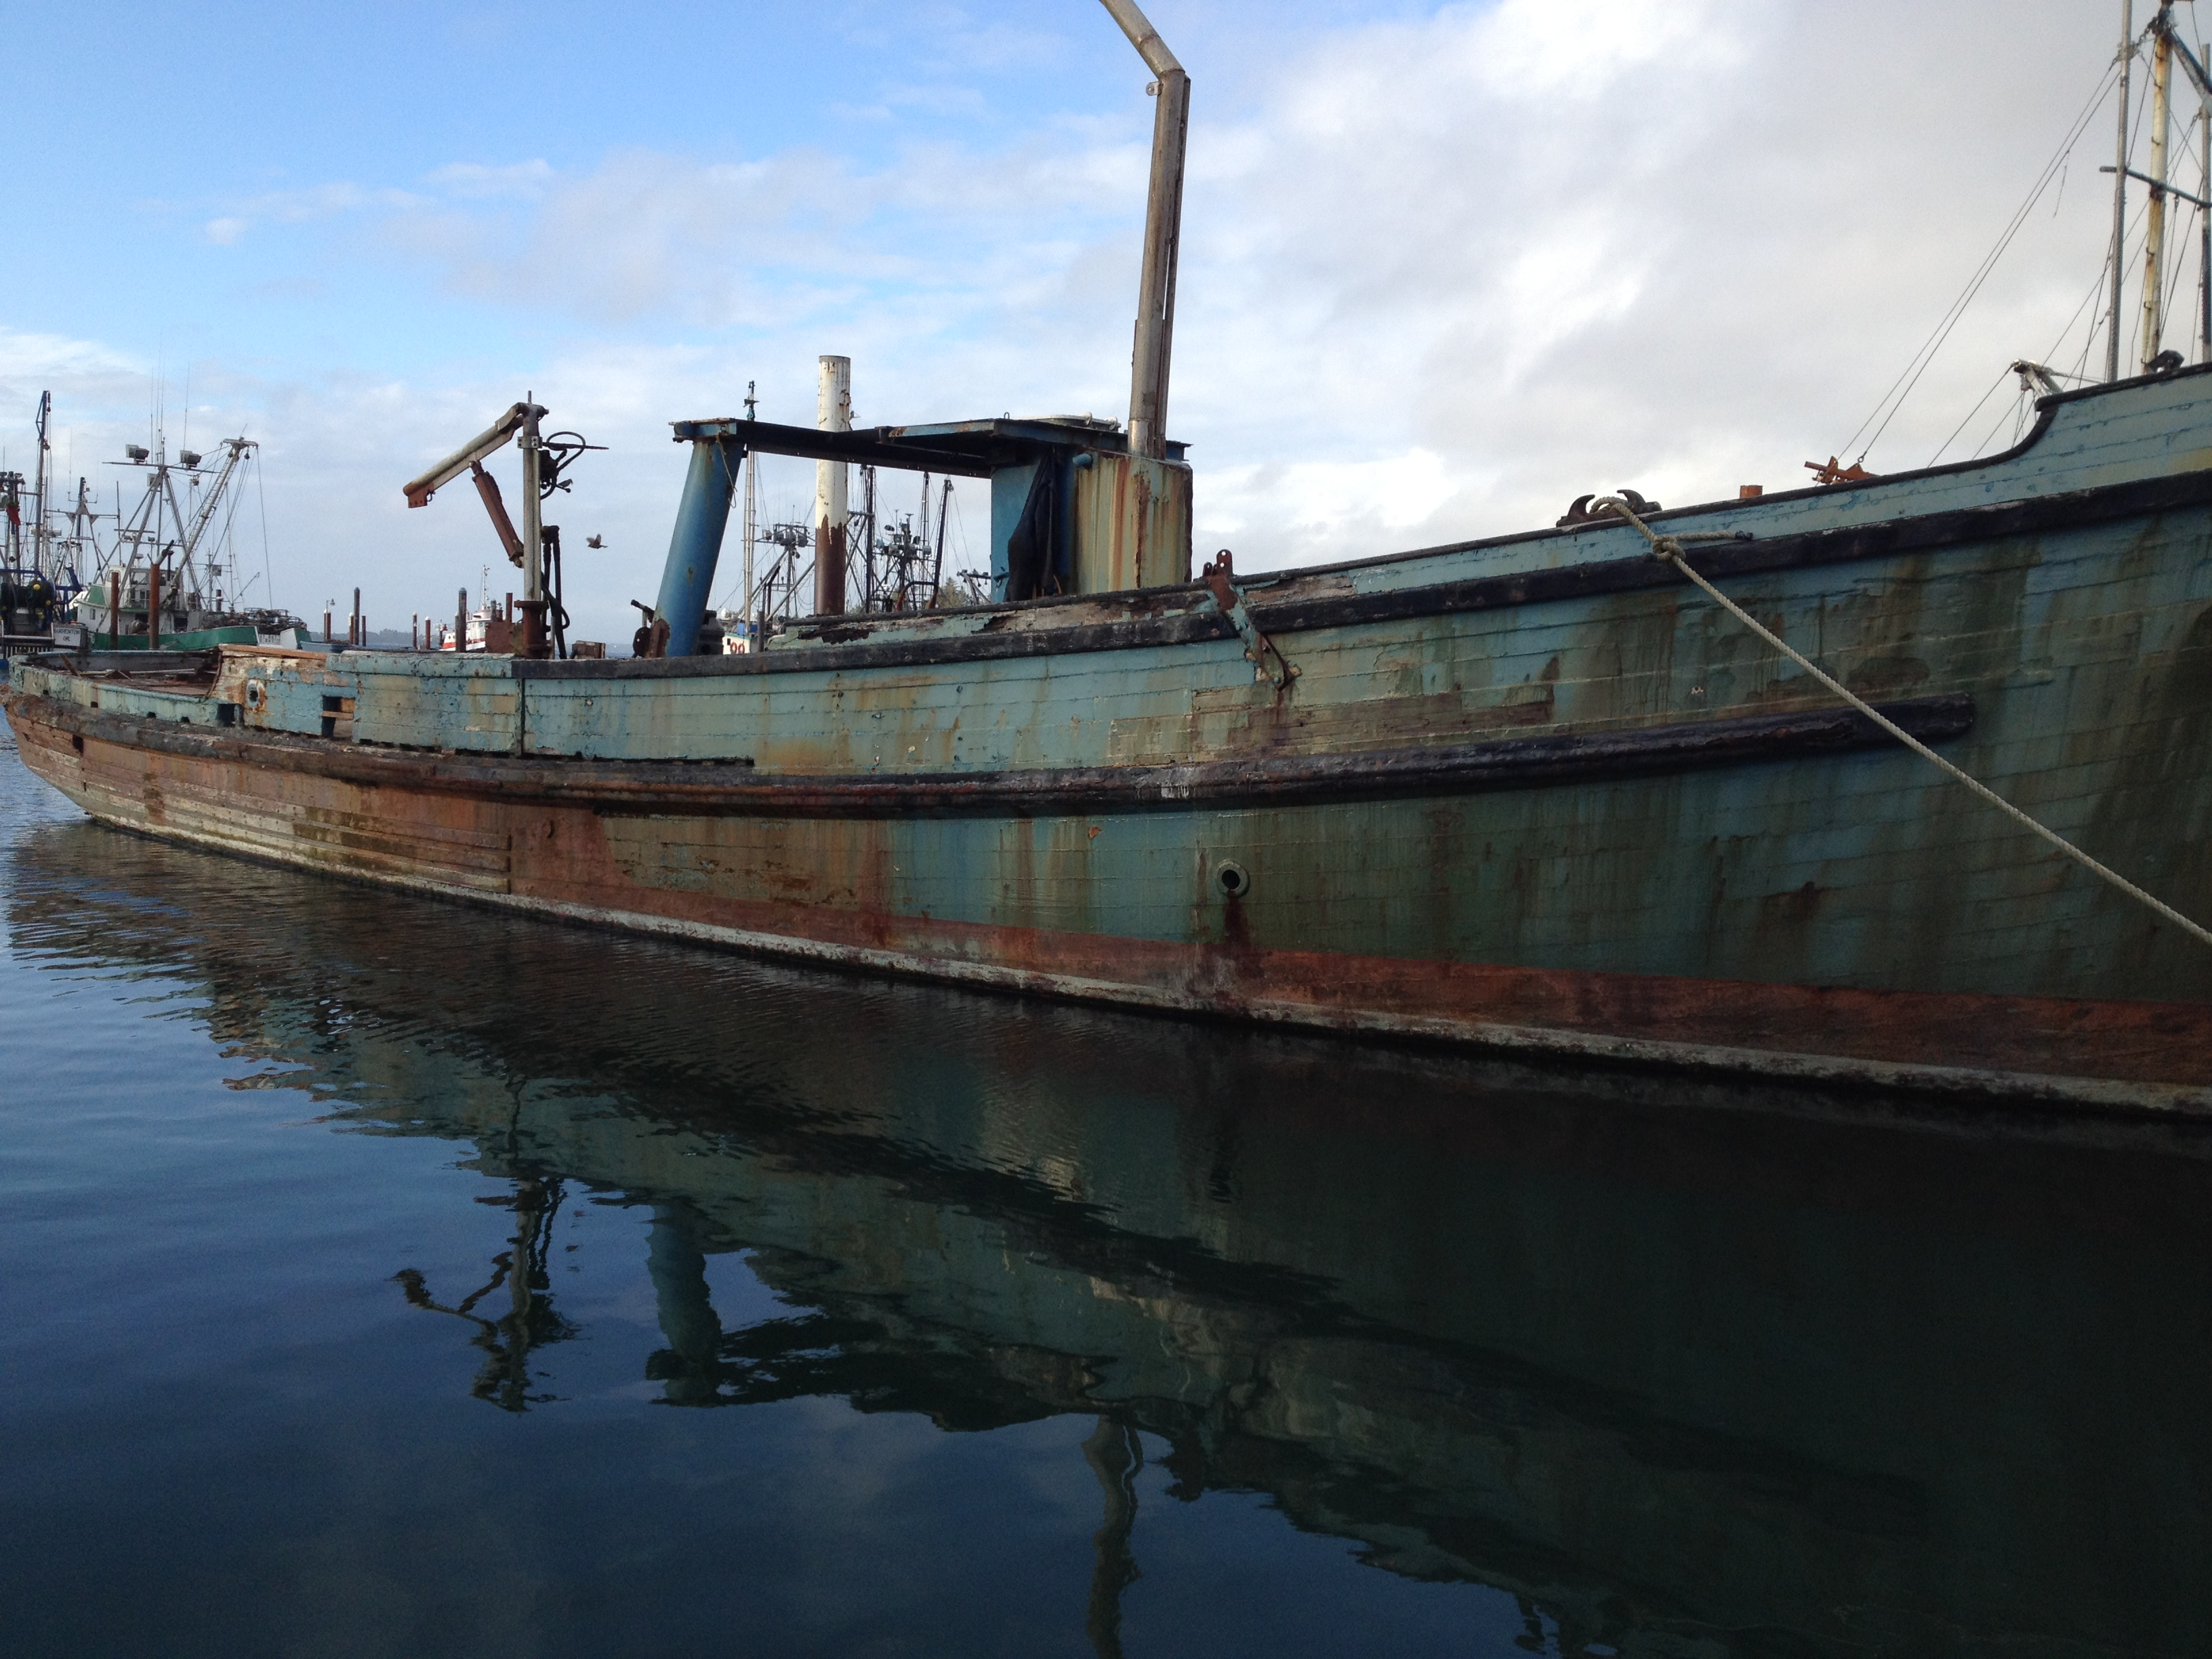 The Western -a derelict boat that eventually sank and was removed in 2016 from Coos Bay